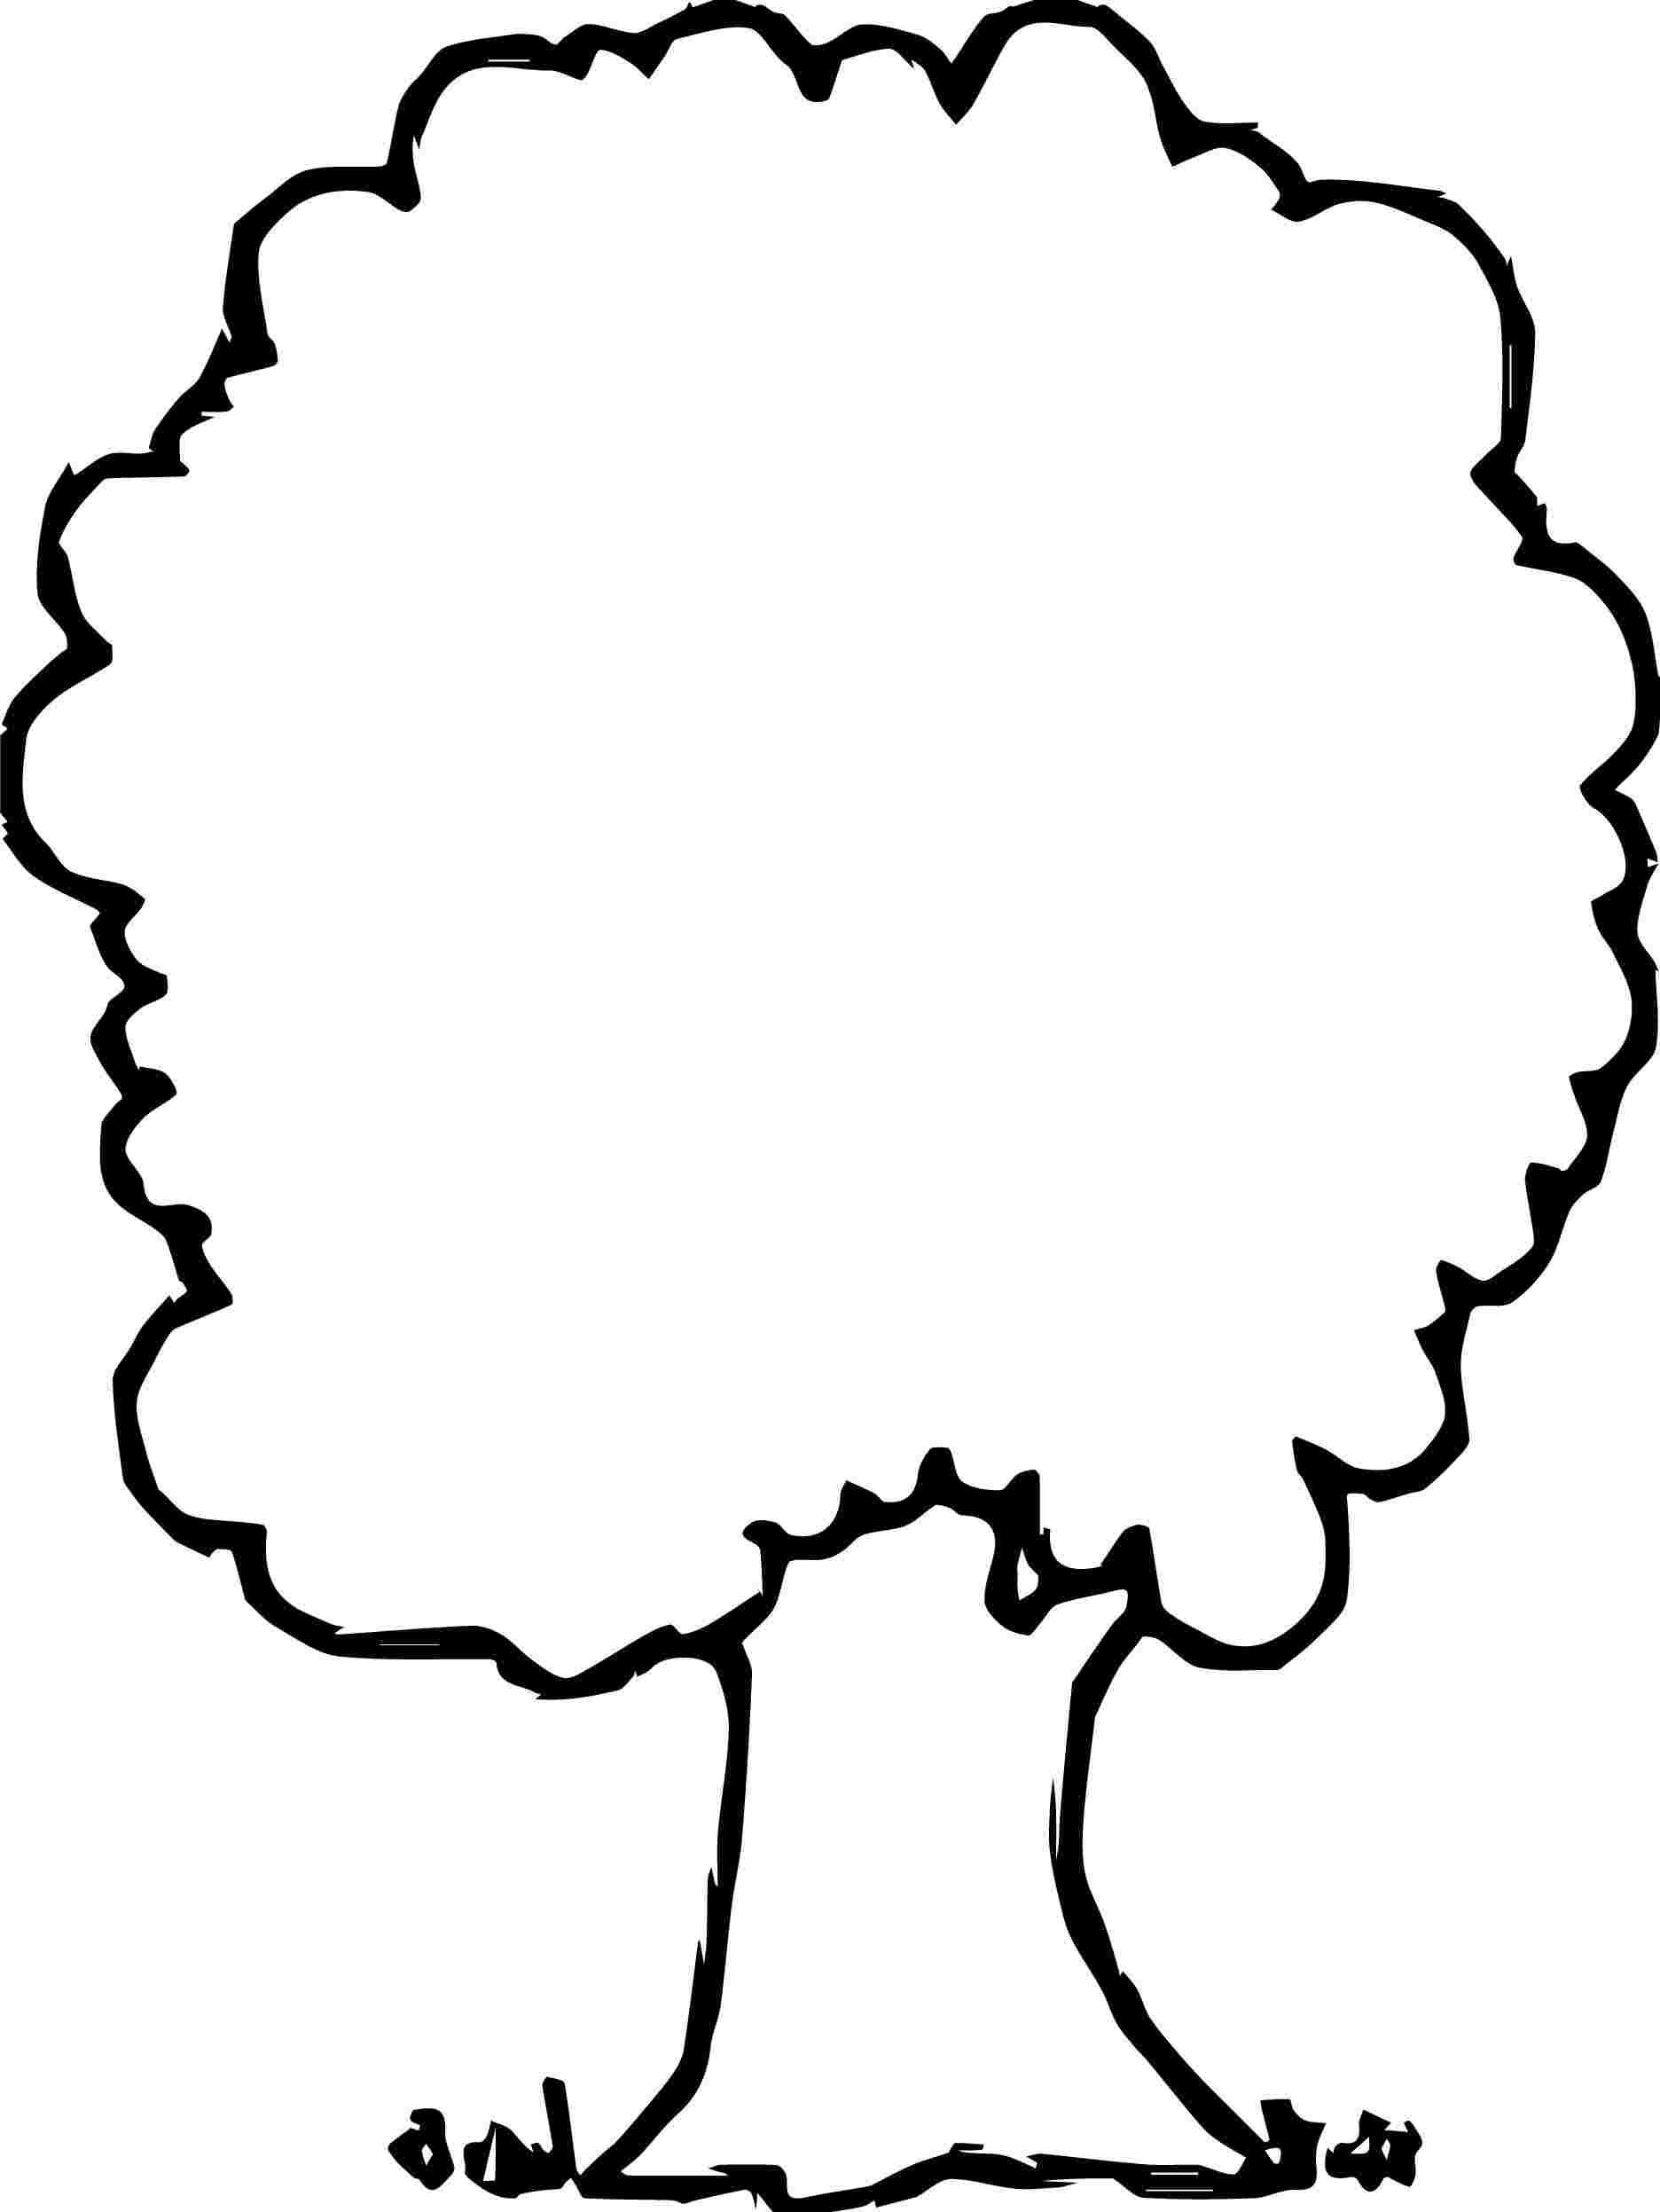 Simple Tree Coloring Pages Tree Coloring Page Easy Coloring Pages Christmas Tree Coloring Page